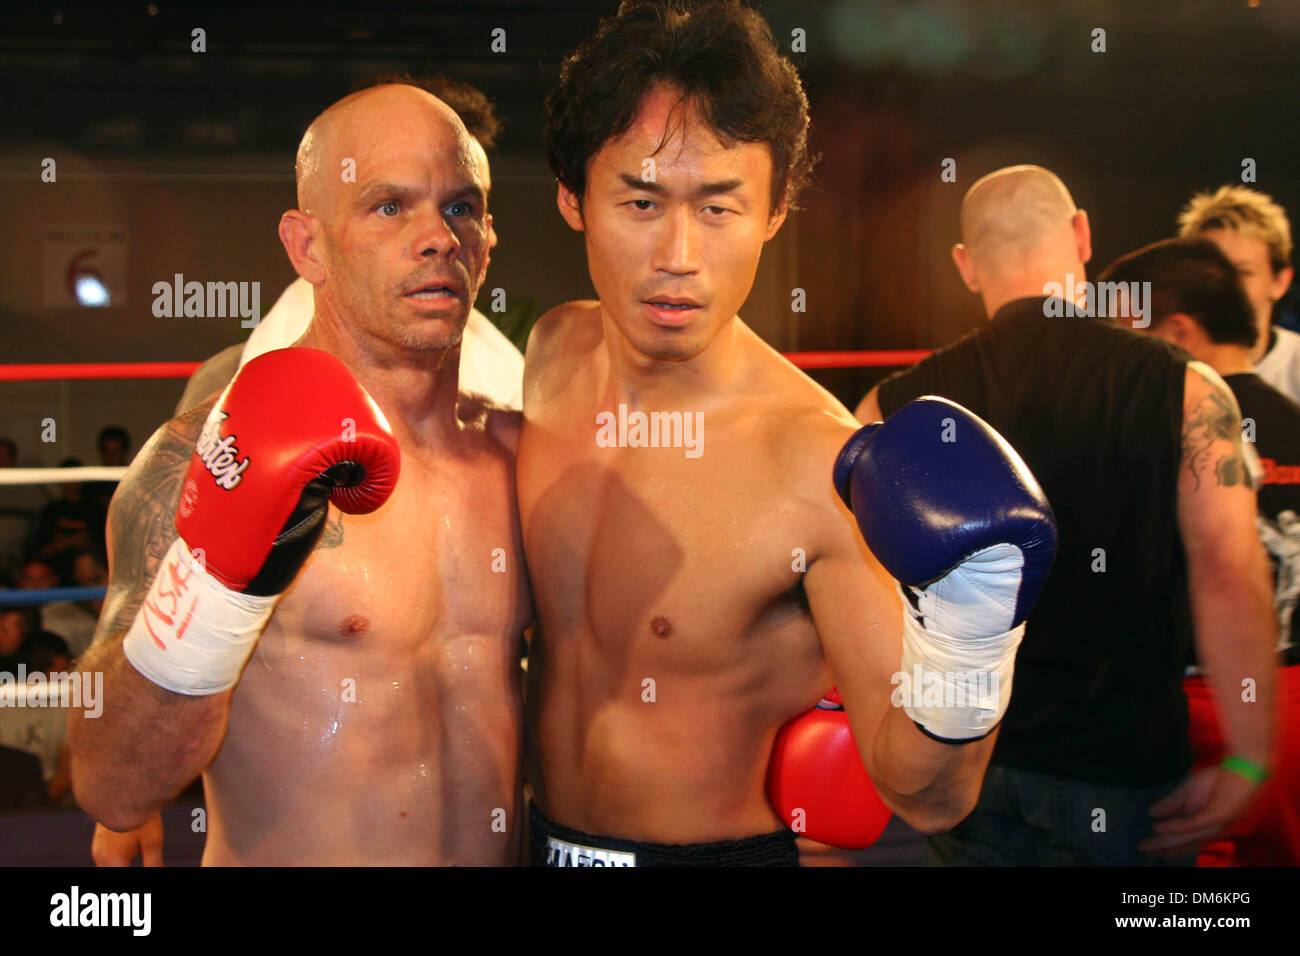 May 30, 2005; Las Vegas, NV, USA; HISAYUKI KANAZAWA right poses with TOM JONES (L), after defeating JONES. KANAZWAWA from JAPAN won the IMTC WORLD Welterweight Championship MUAY THAI Title in the first round 2:43 seconds technical knockout against TOM JONES at the PLAZA Hotel & Casino in Las Vegas, Nevada. Mandatory Credit: Photo by Mary Ann Owen/ZUMA Press. (©) Copyright 2005 by M - Stock Image